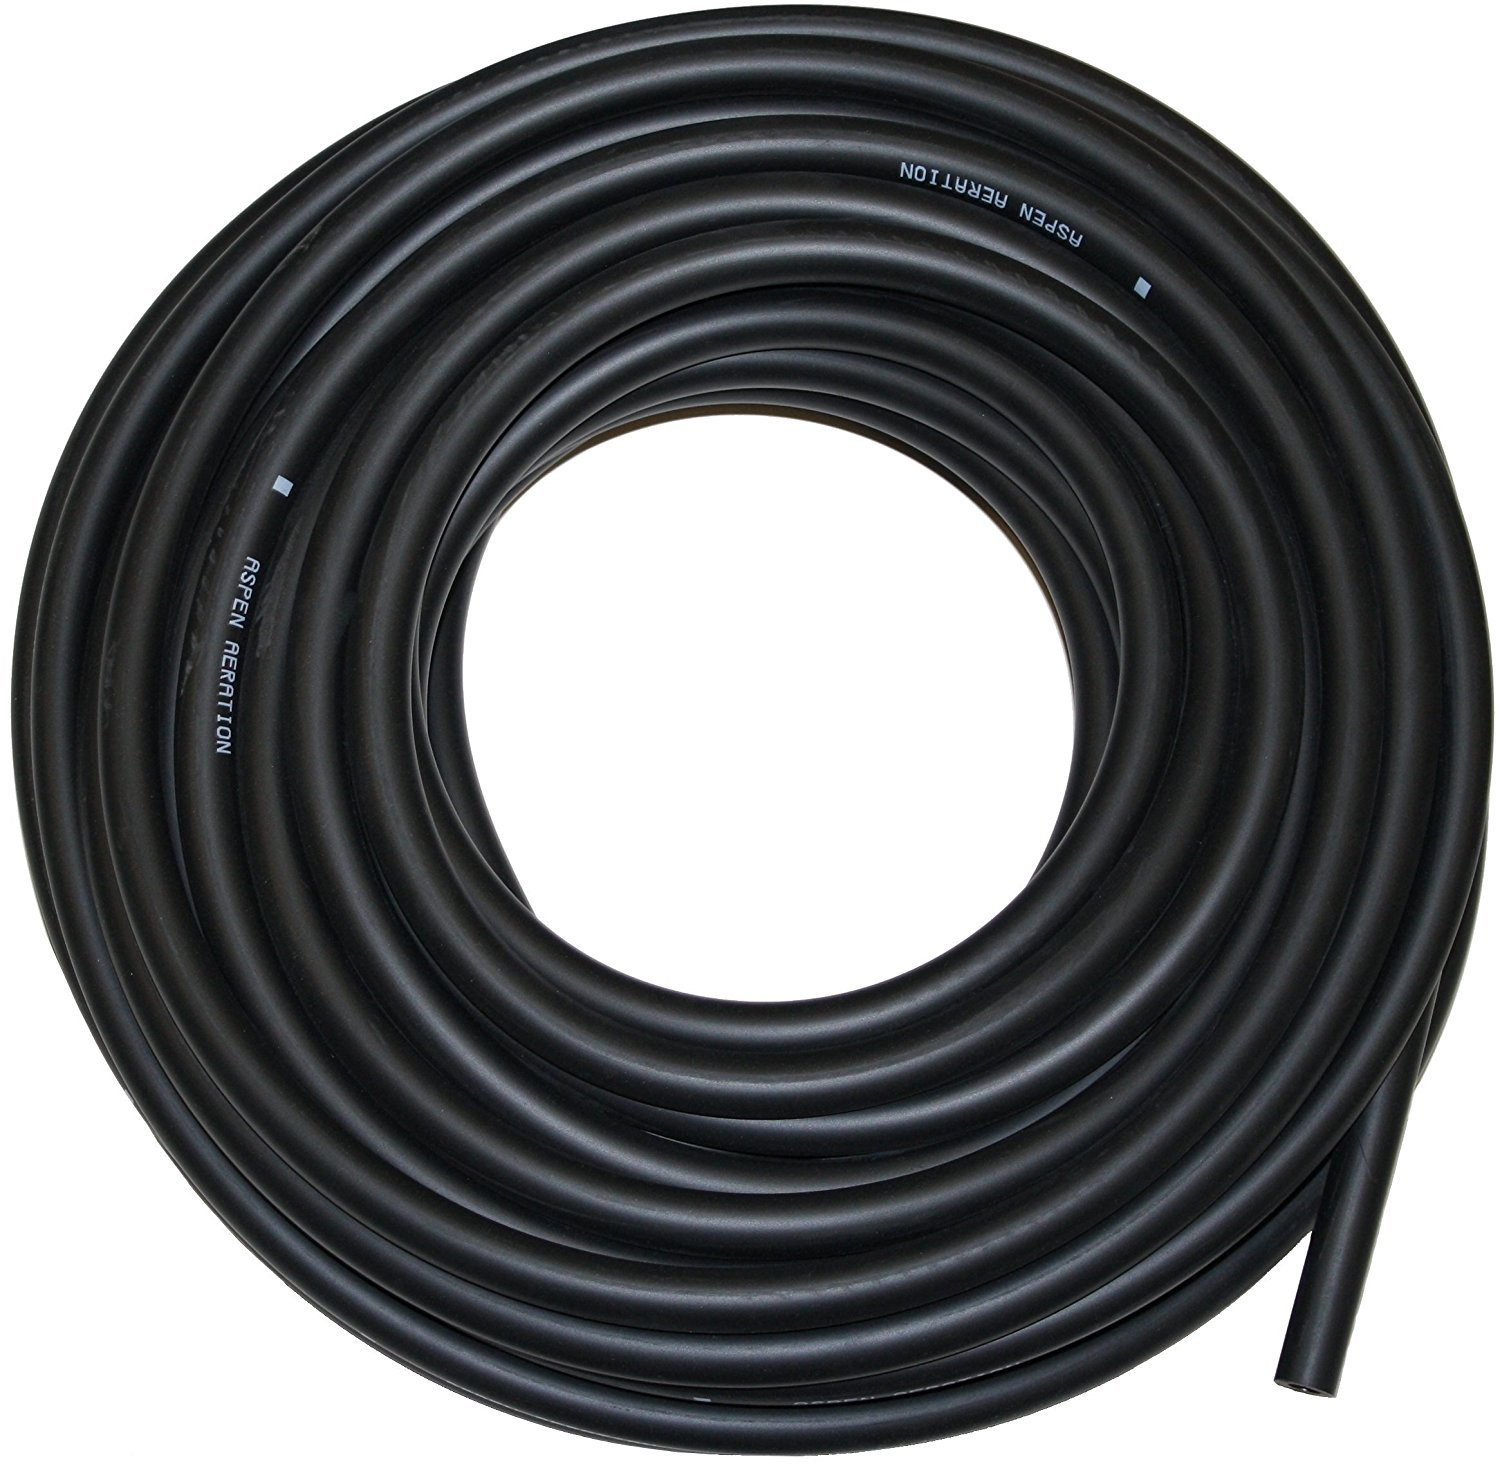 3/8'' Weighted Tubing By Aspen Aeration | Self Sinking Air Hose + QUICK and Easy install (300 Feet)